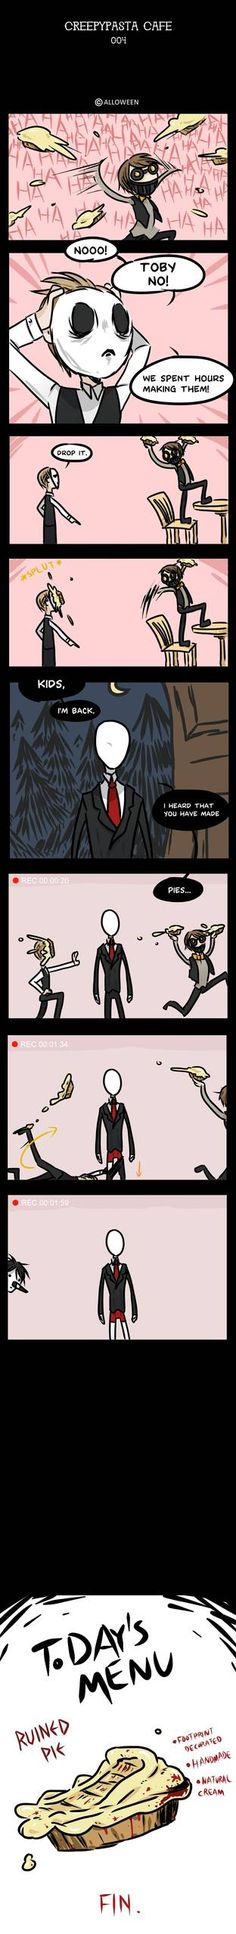 Laughing Jack / Eyeless Jack / Jeff the killer / Slenderman / Masky / Hoodie / Ticci Toby I think Slender is the owner. here's the comics: alloween. Scary Stories, Horror Stories, Creepypasta Proxy, Creepypasta Quotes, Creepy Pasta Family, Emo, Laughing Jack, Jeff The Killer, Creepy Art